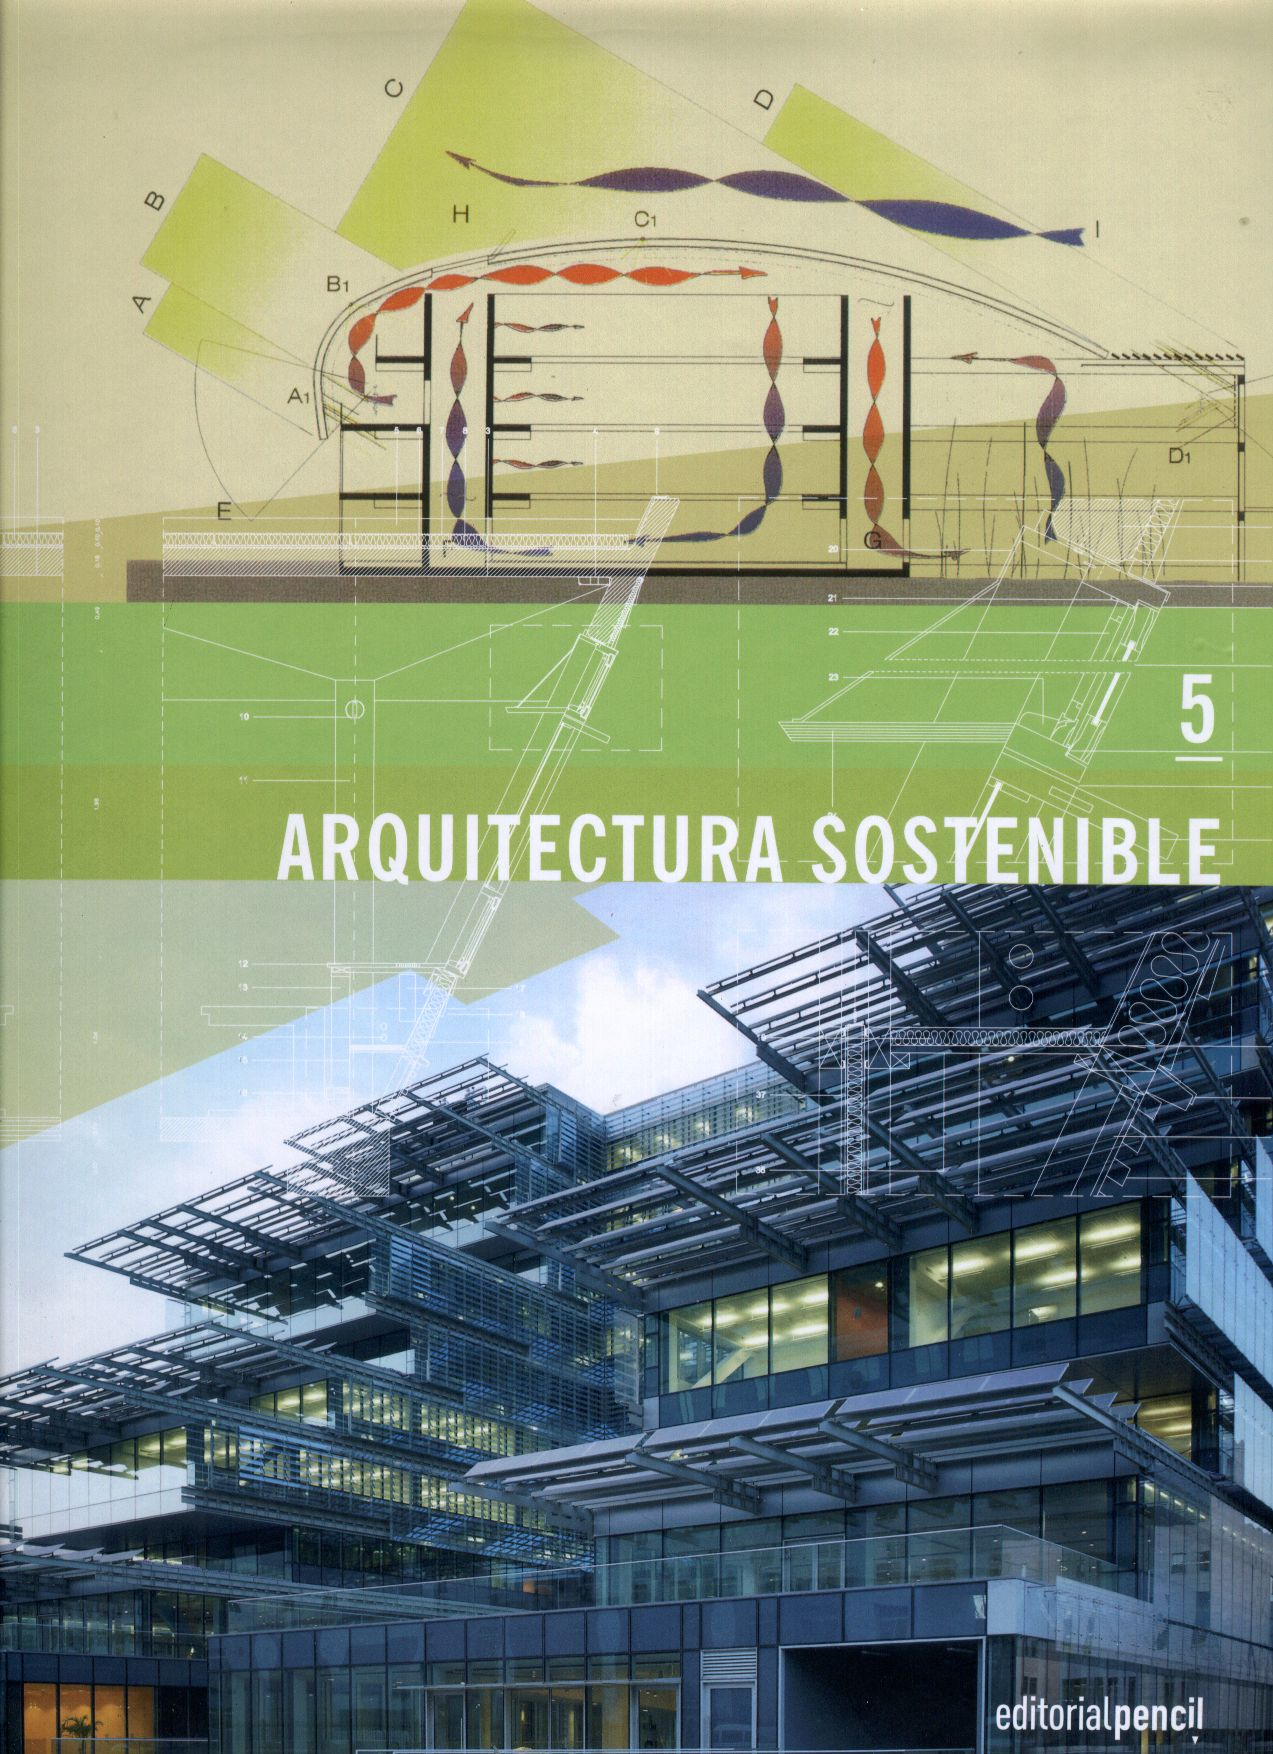 Arquitectura sostenible by dpr barcelona issuu for Arquitectura sostenible